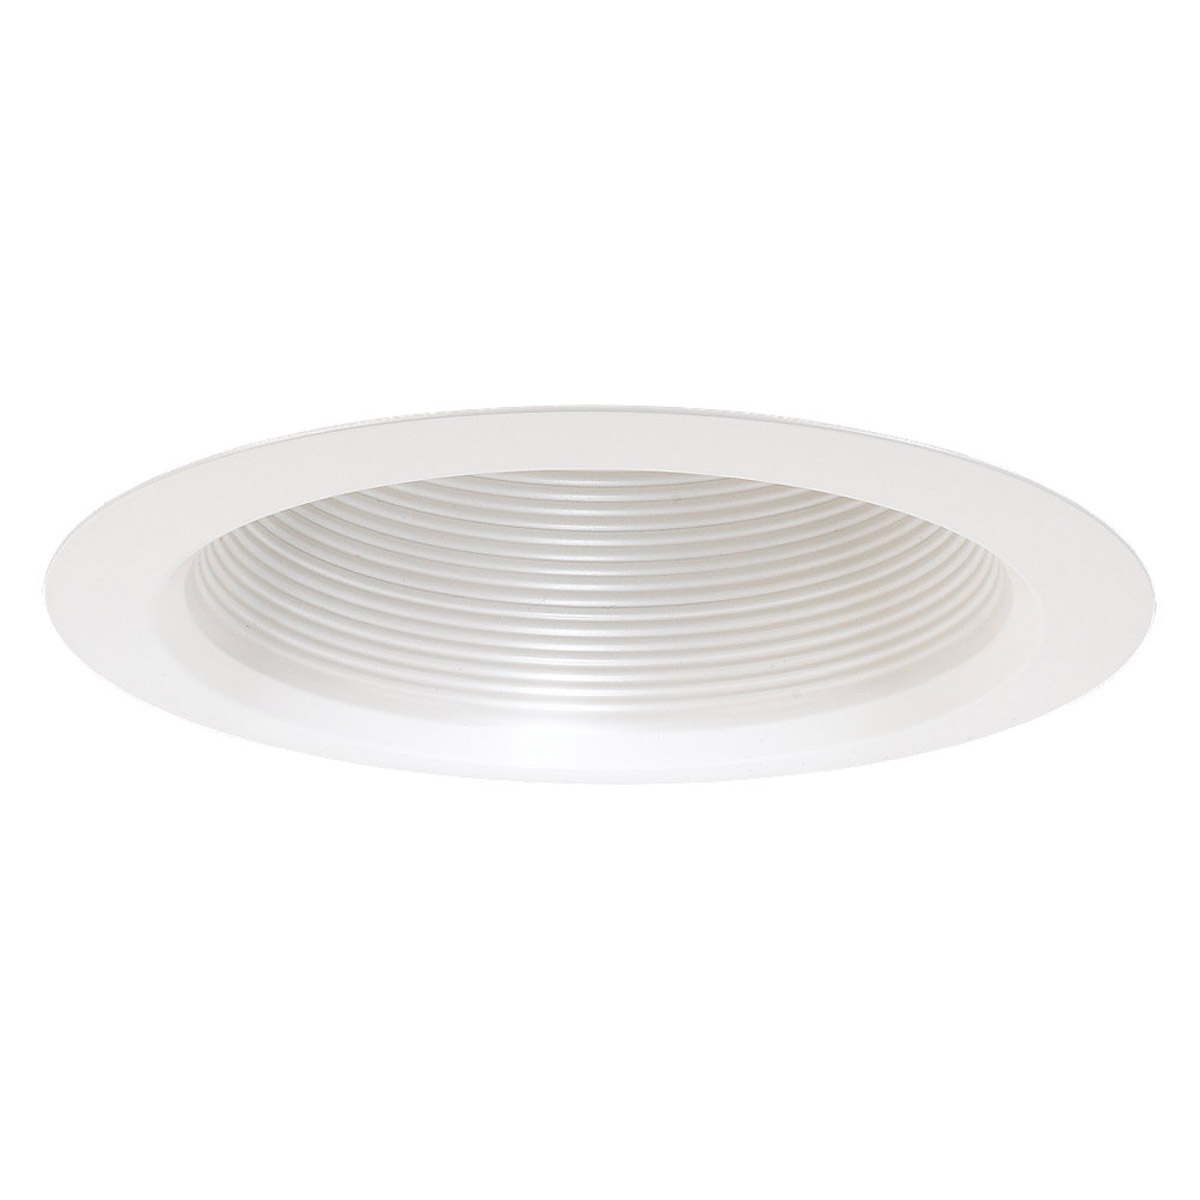 Sea Gull Lighting Signature Recessed Trim Only in White 1159AT-14 photo